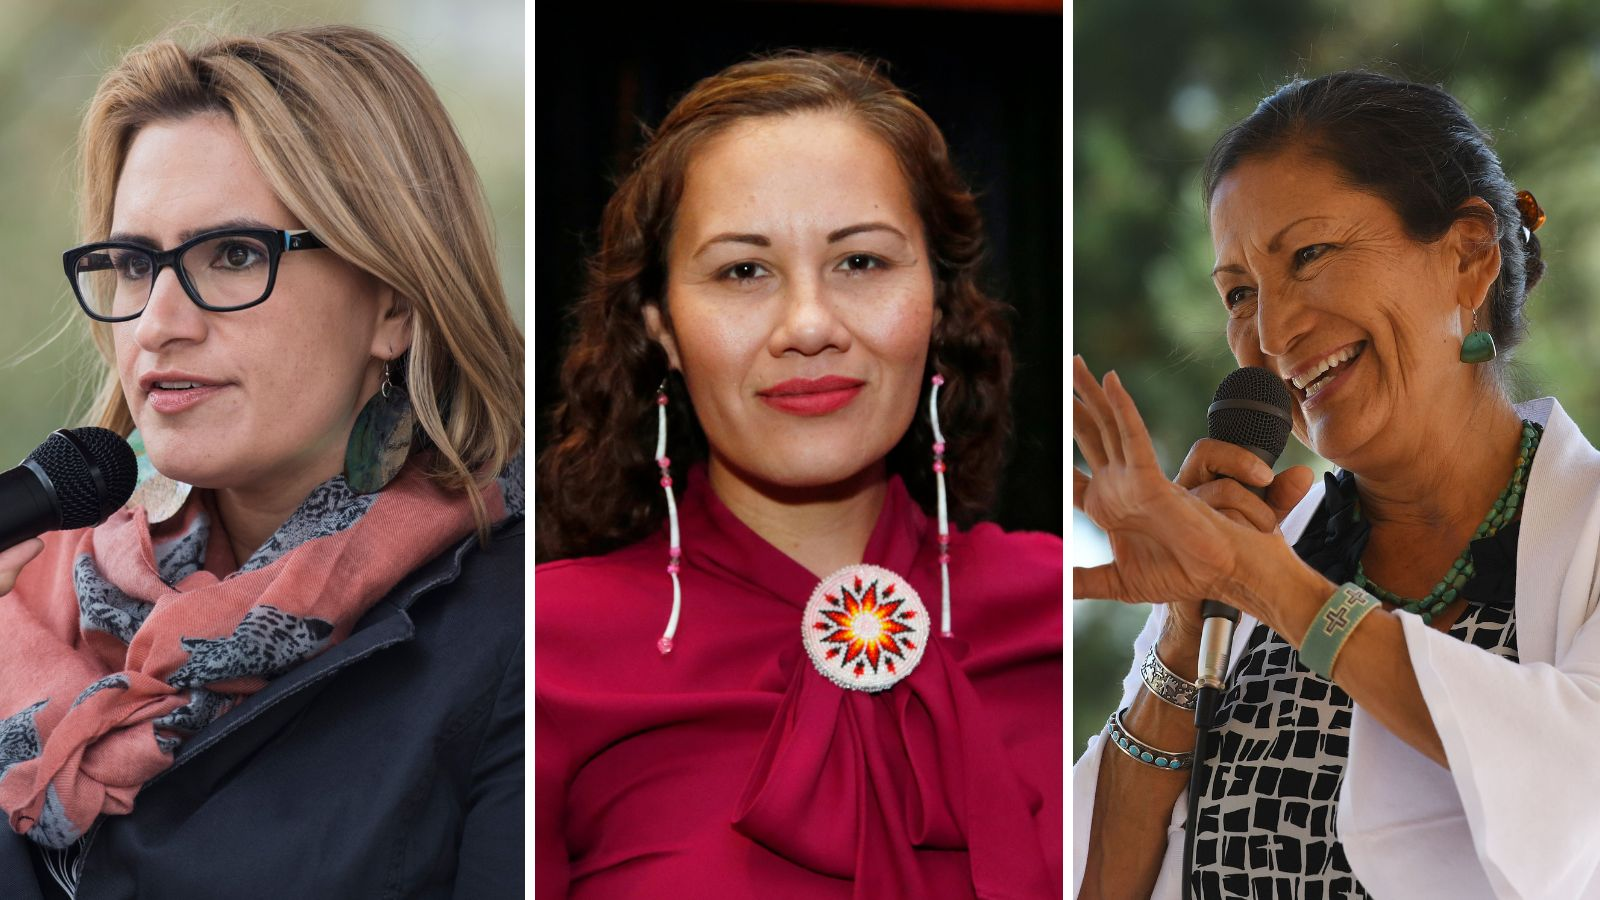 From left to right, candidates Peggy Flanagan, Ashley Nicole McCray, and Deb Haaland